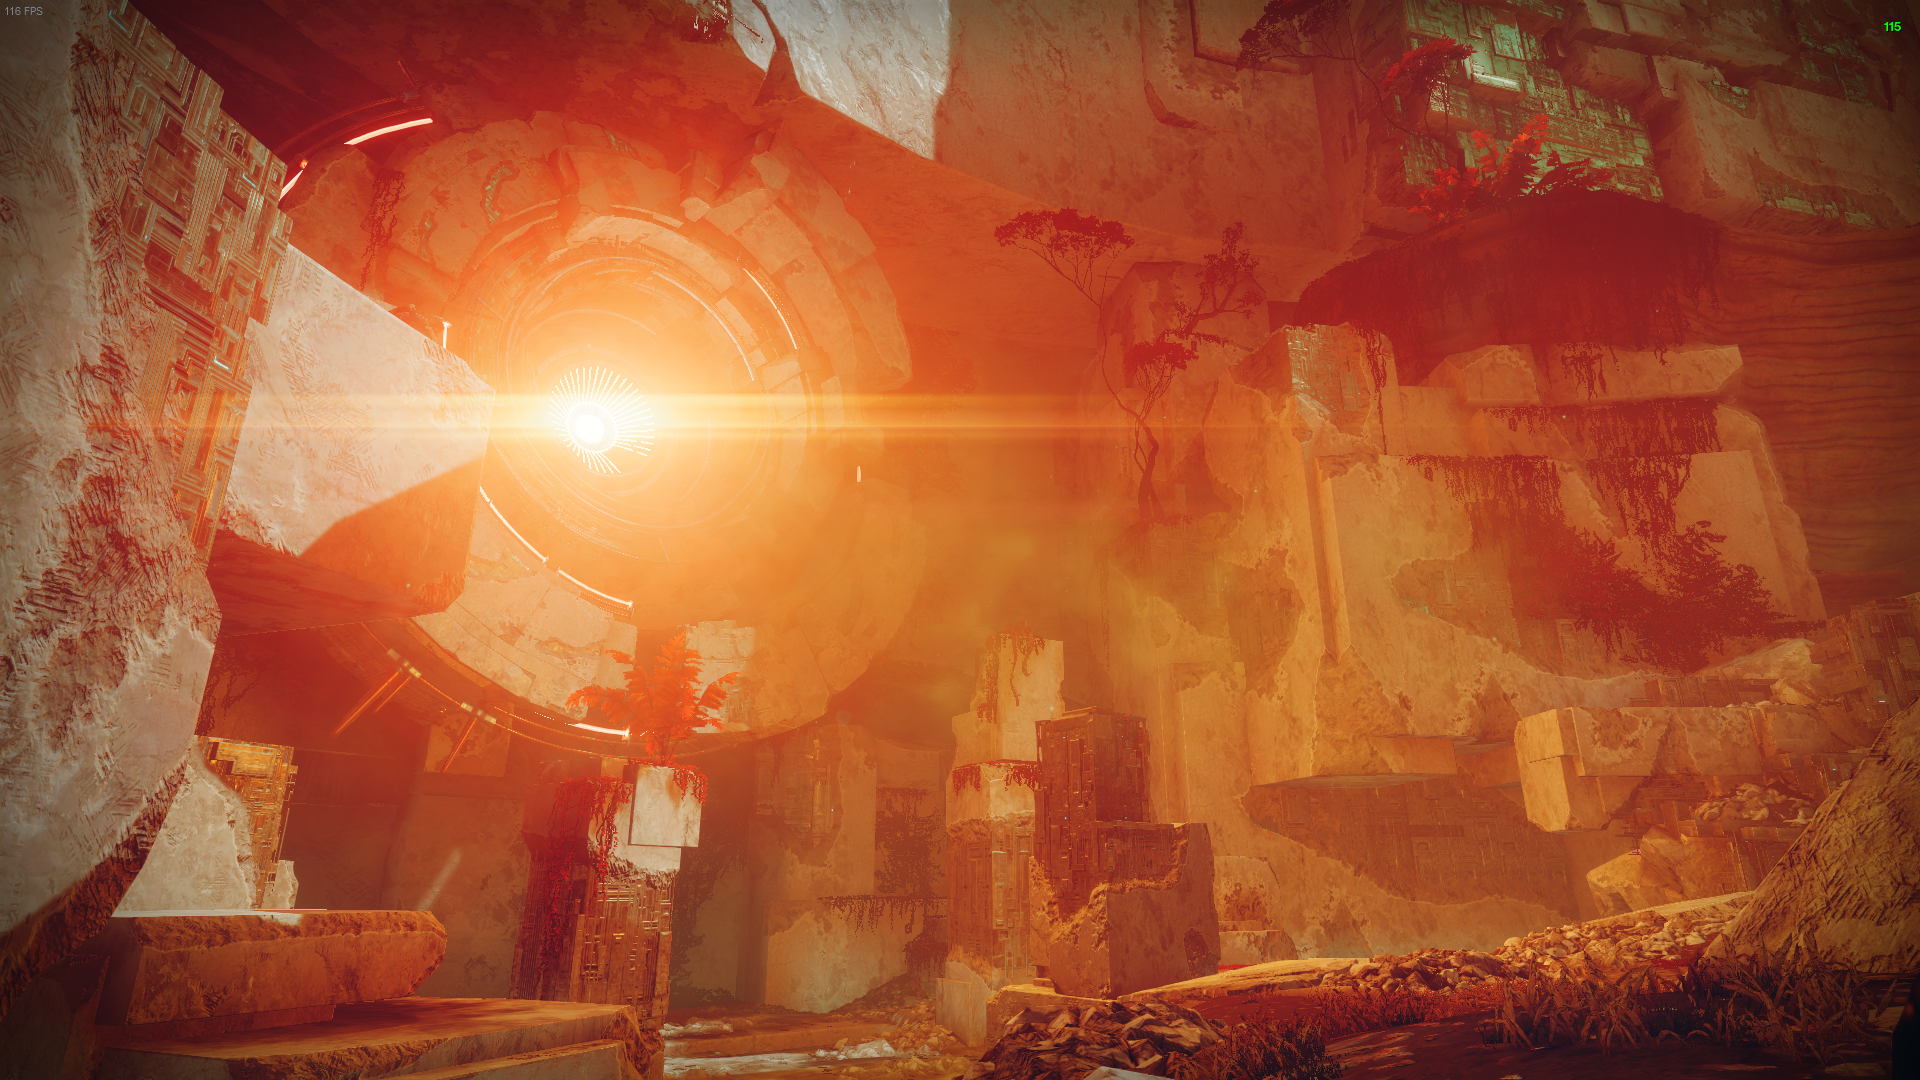 A blinding red and orange light shines from within a circle on a wall on Nessus causing a glare. Lots of nooks and crannies surround it.